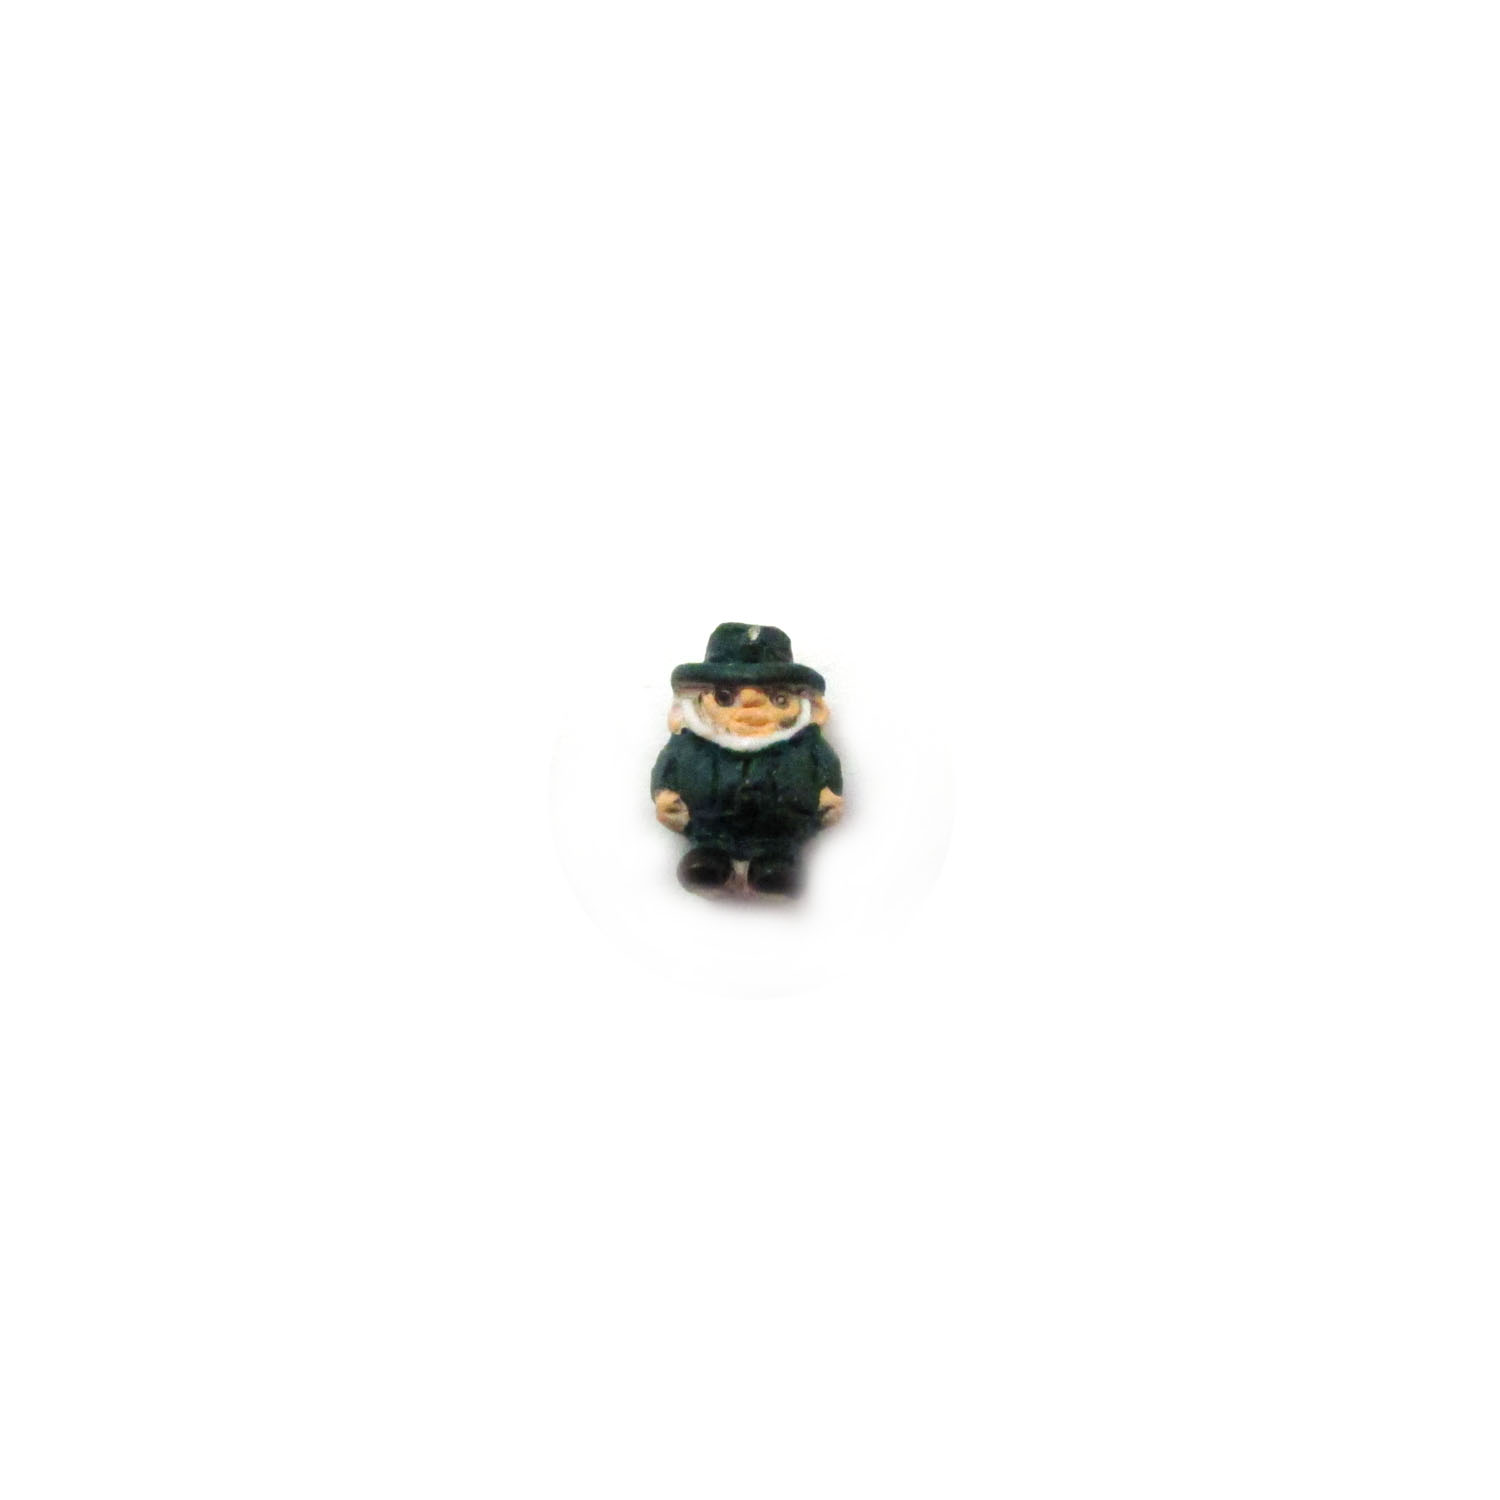 ceramic bead small leprechaun front view